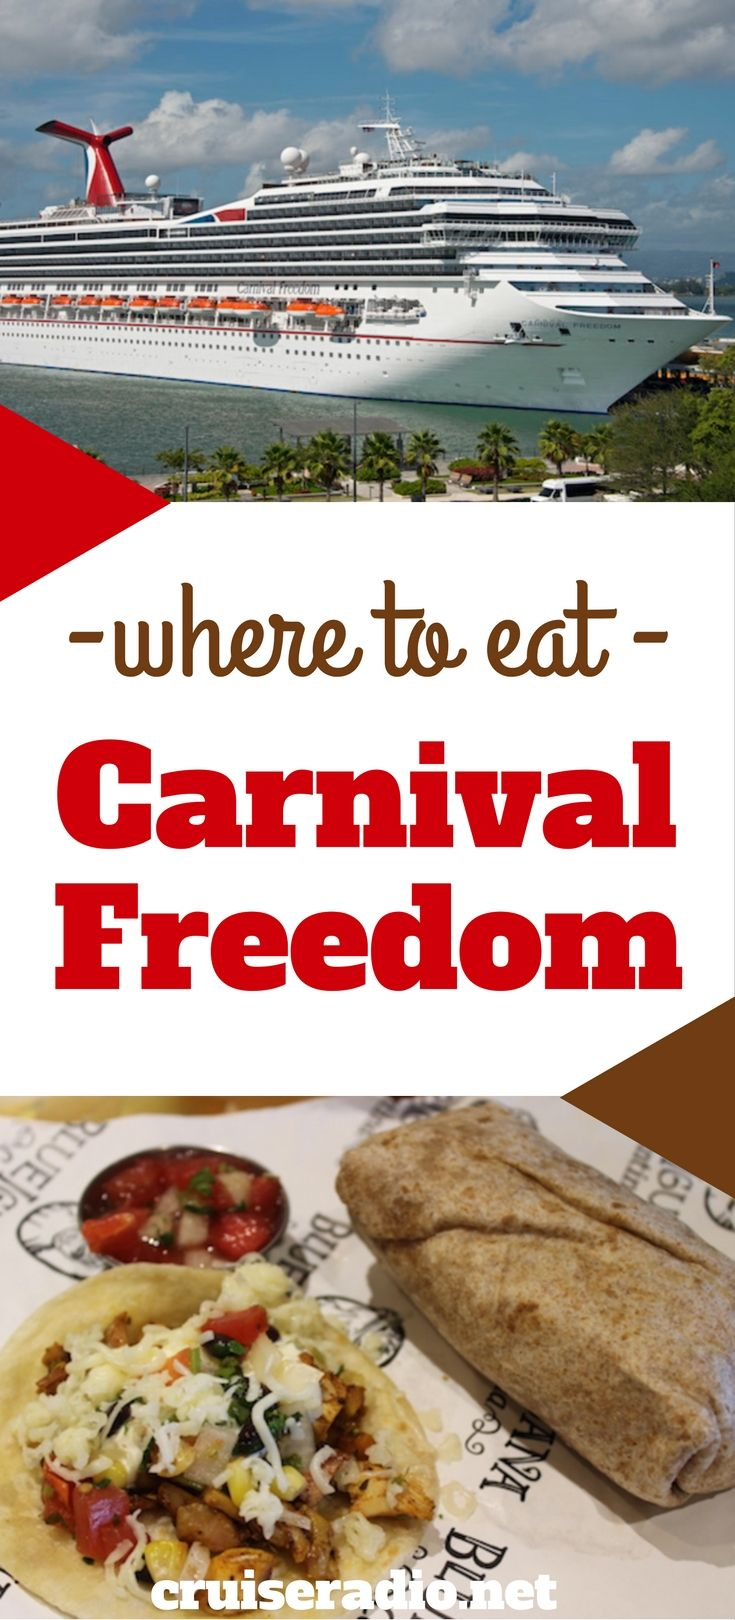 Carnival Freedom: where to eat